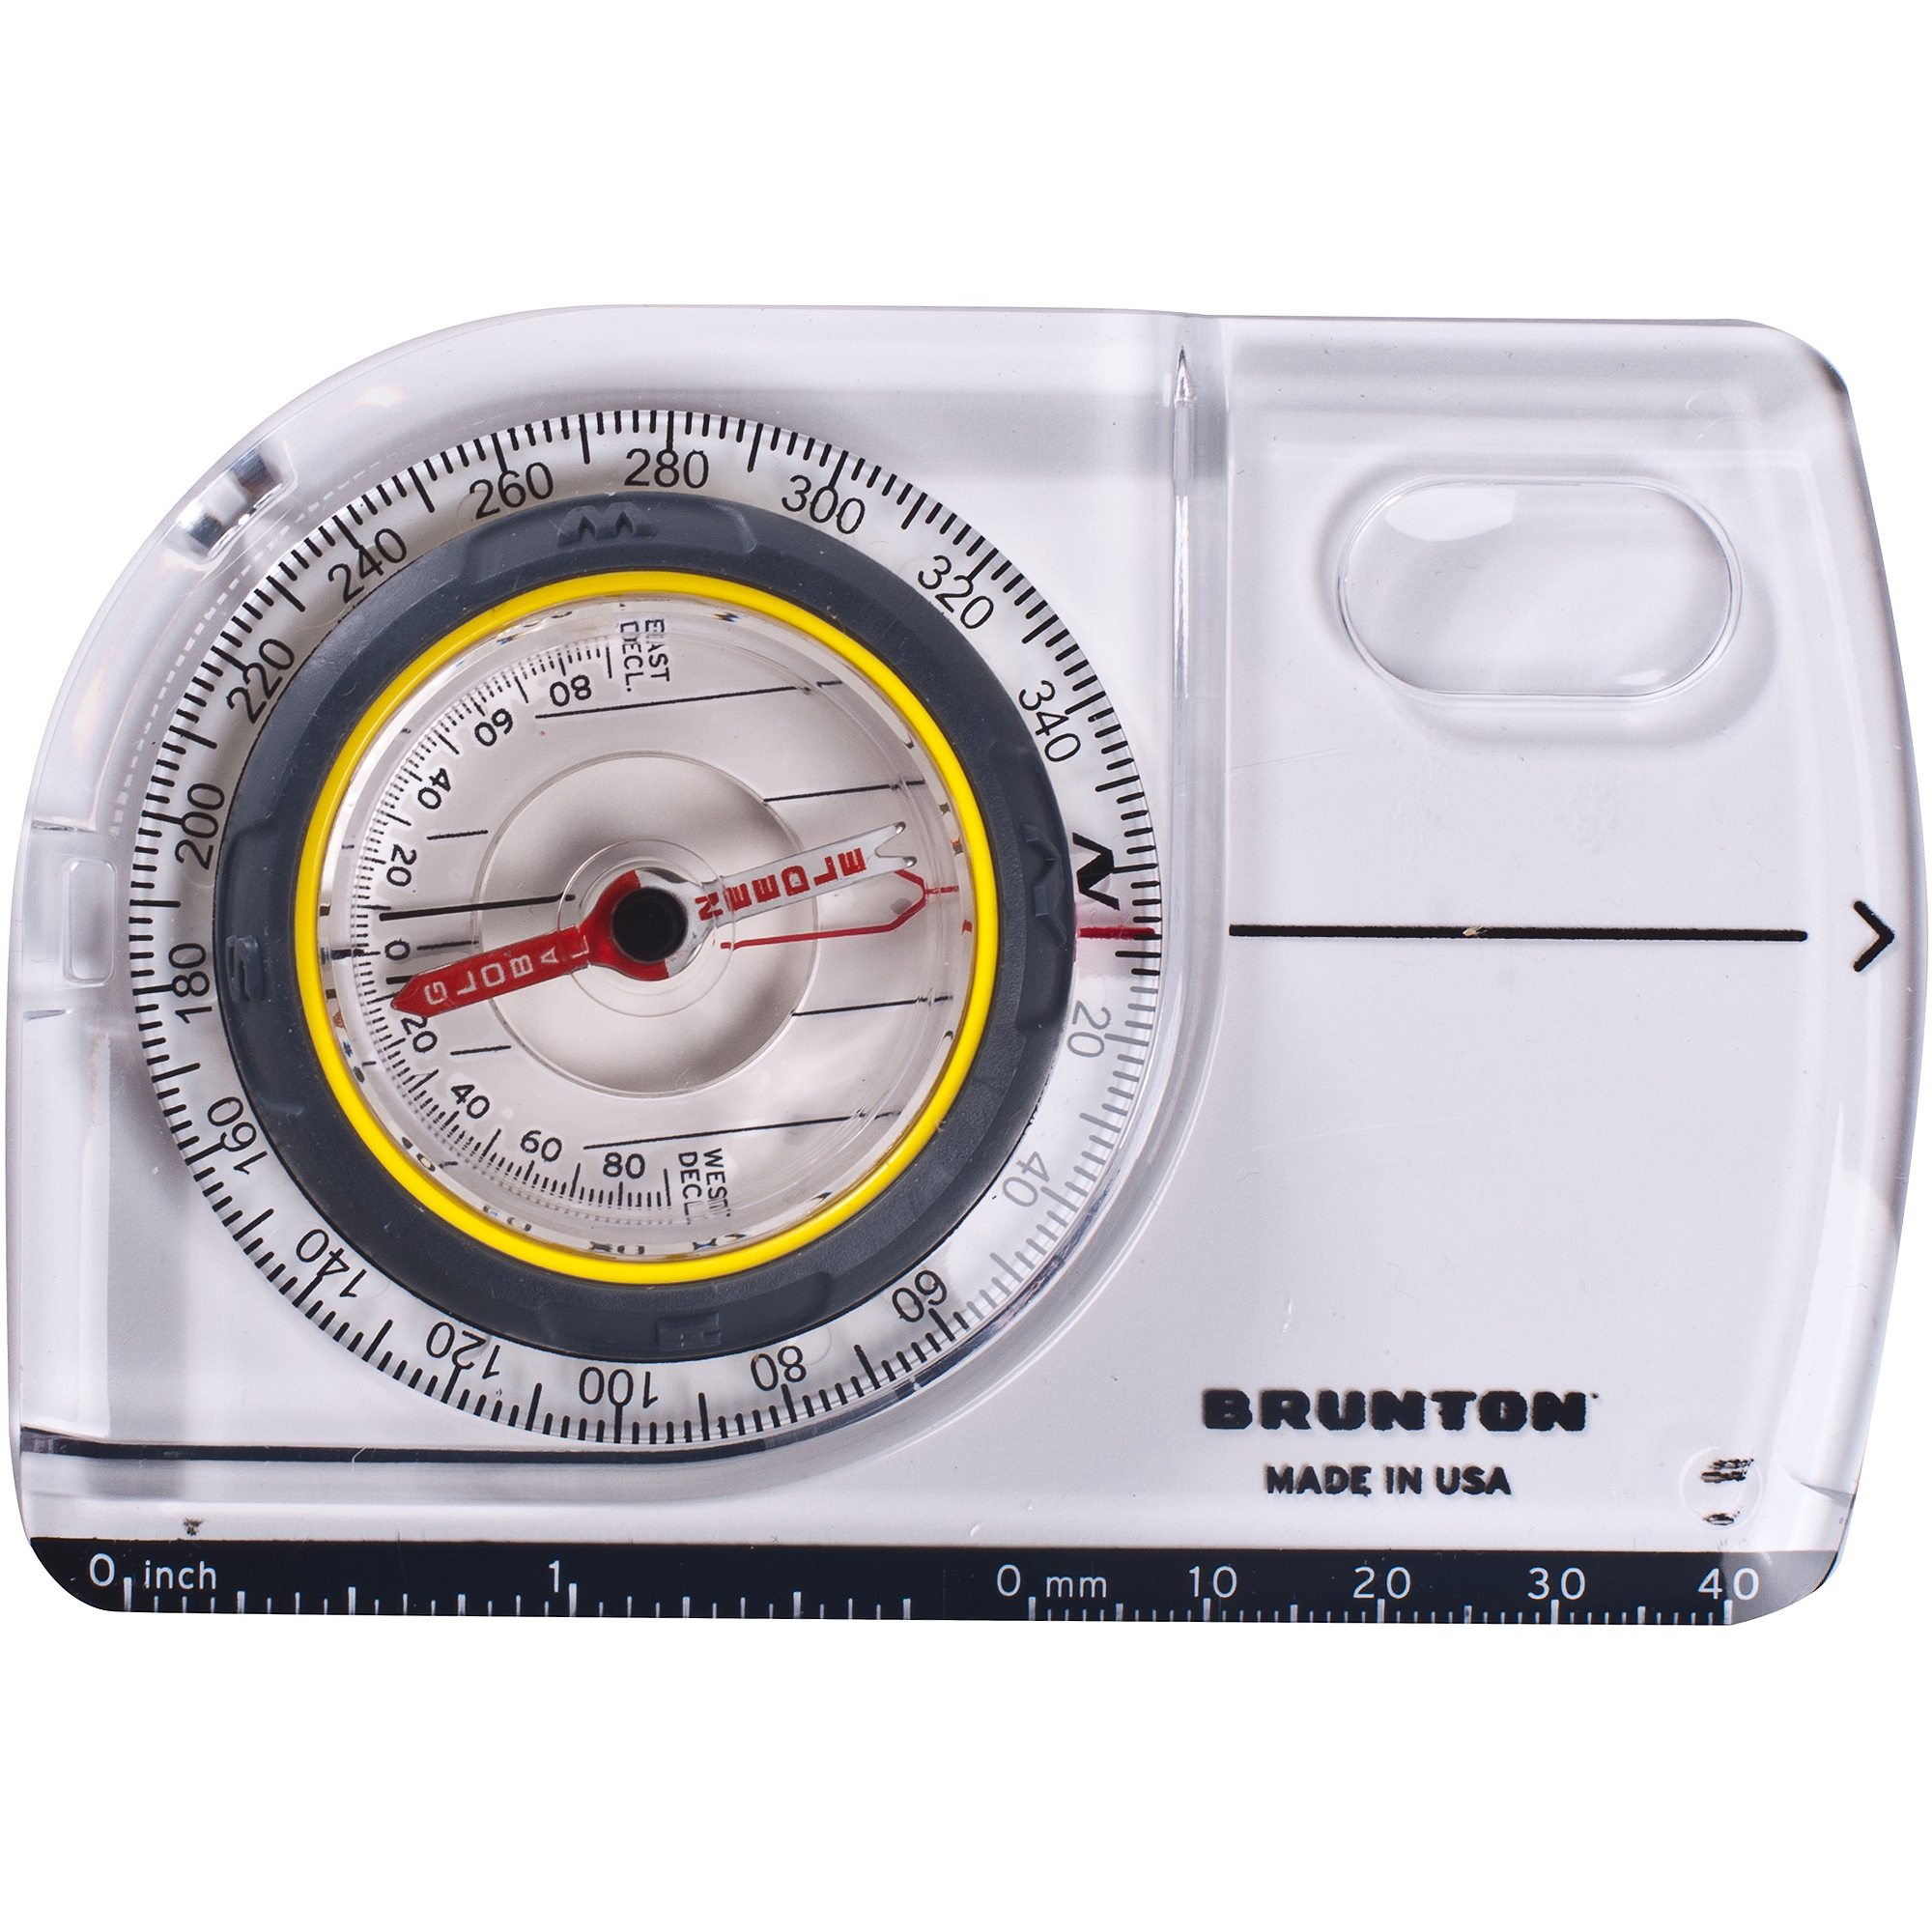 Brunton TruArc5 Baseplate Compass with Global Needle, Map Mag and Standard/Metric Scales